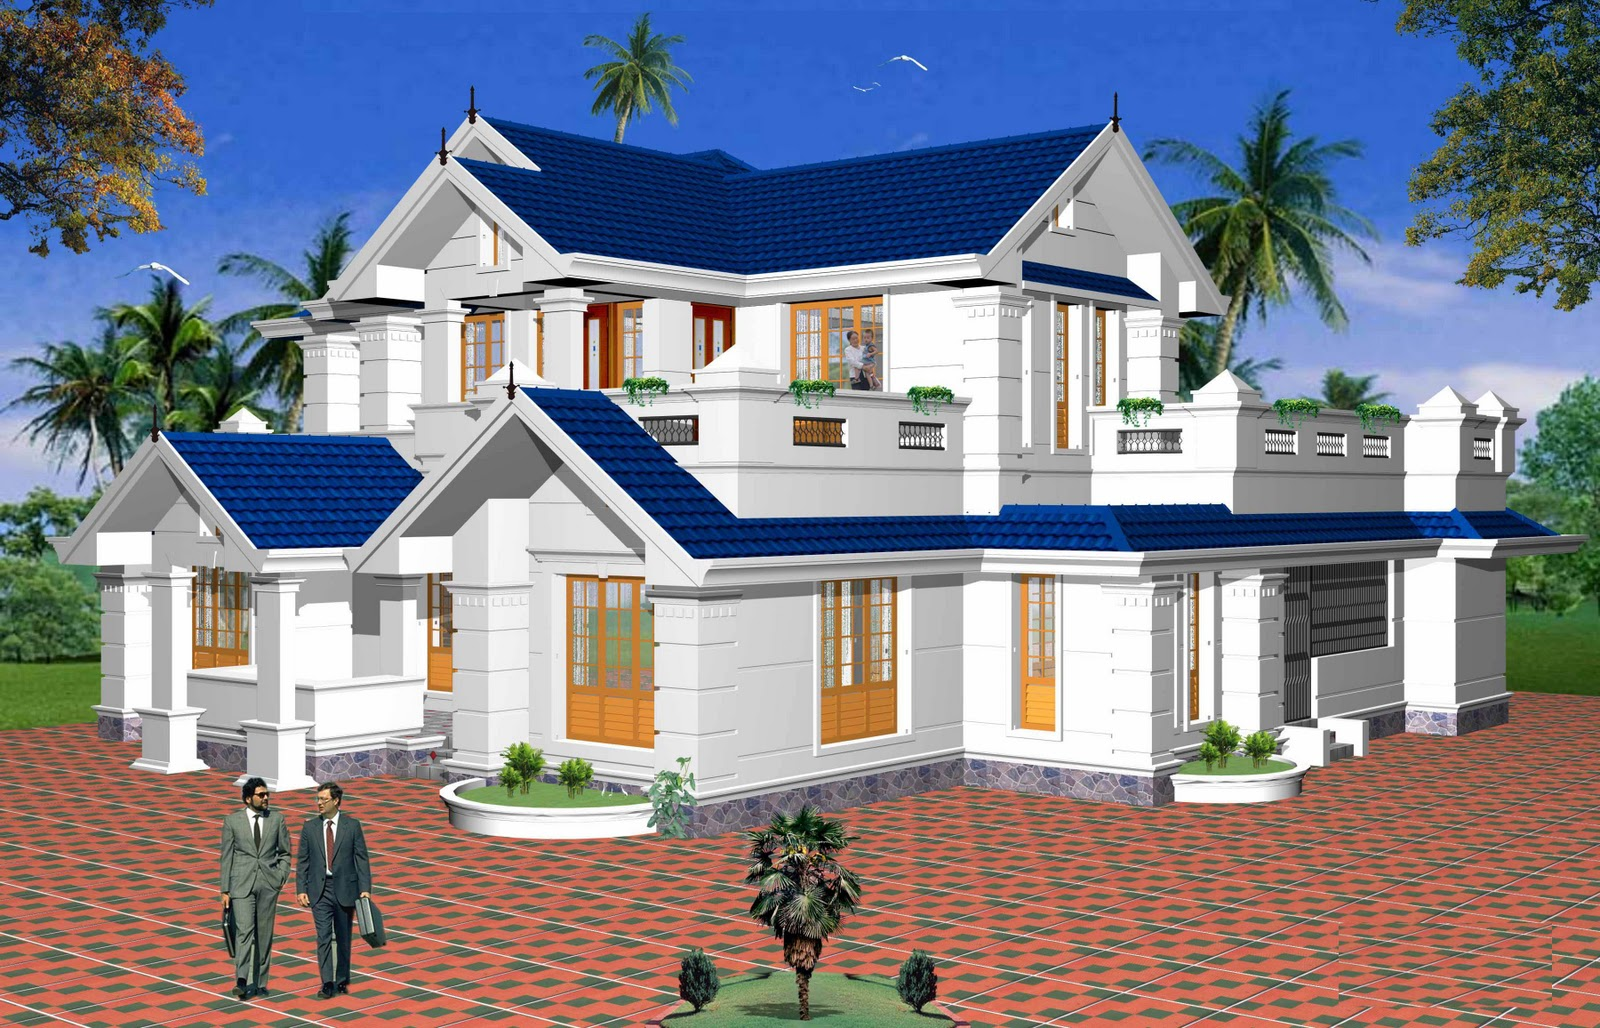 New home designs latest. Beautiful latest modern home designs.